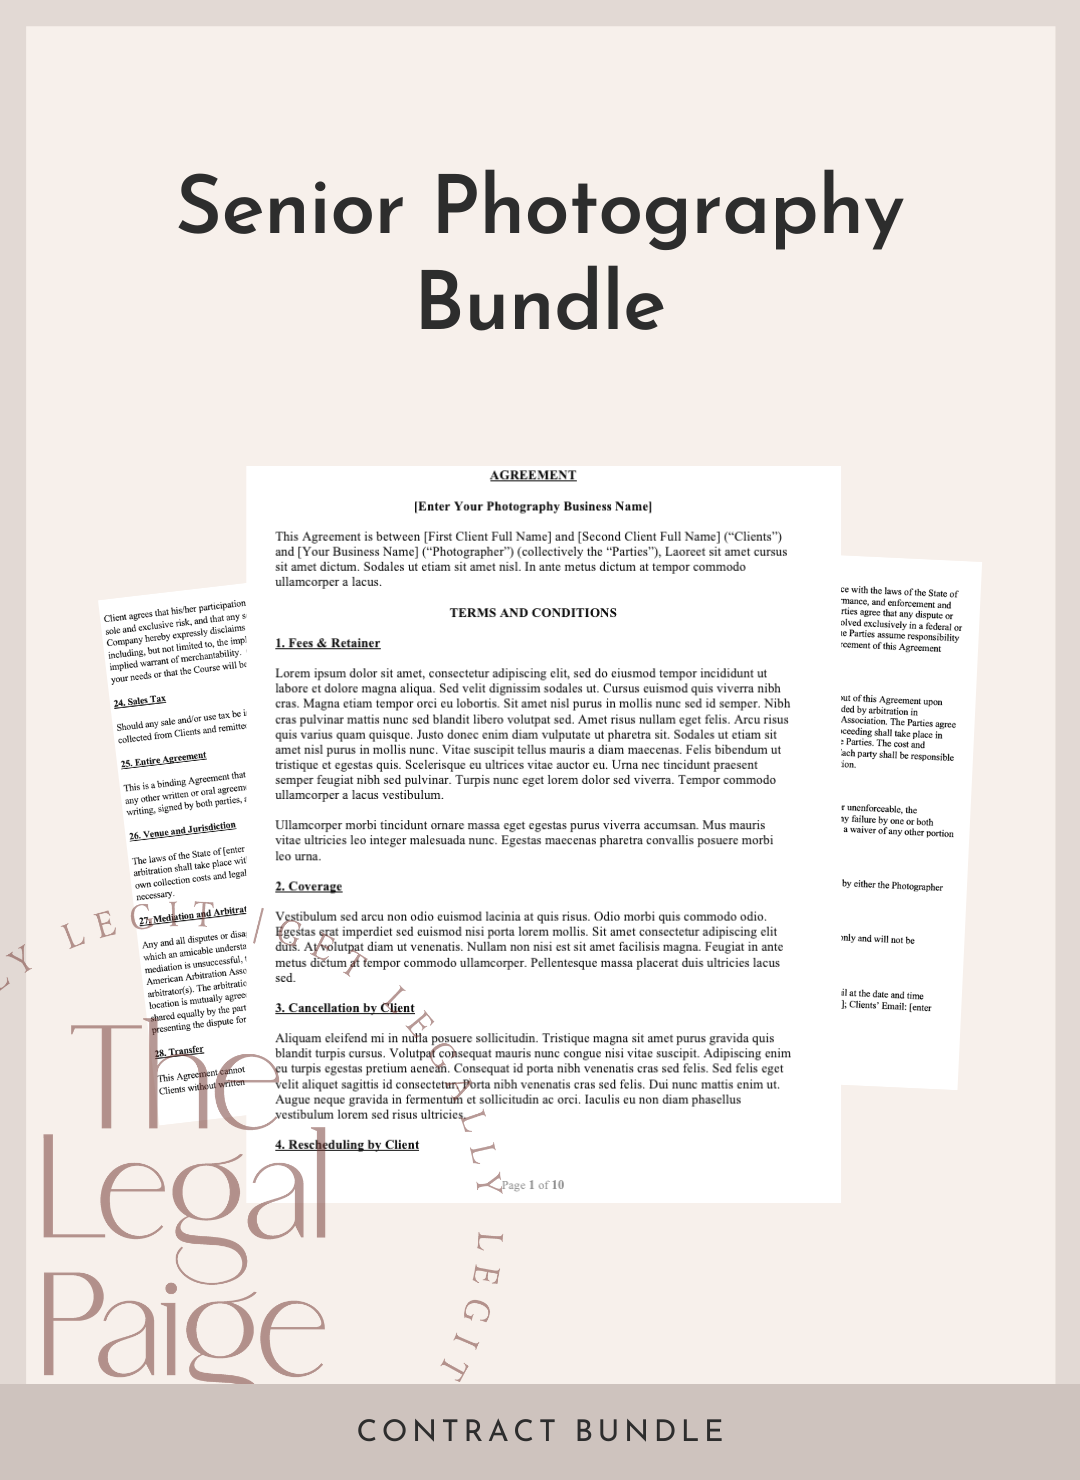 Senior Photography Bundle